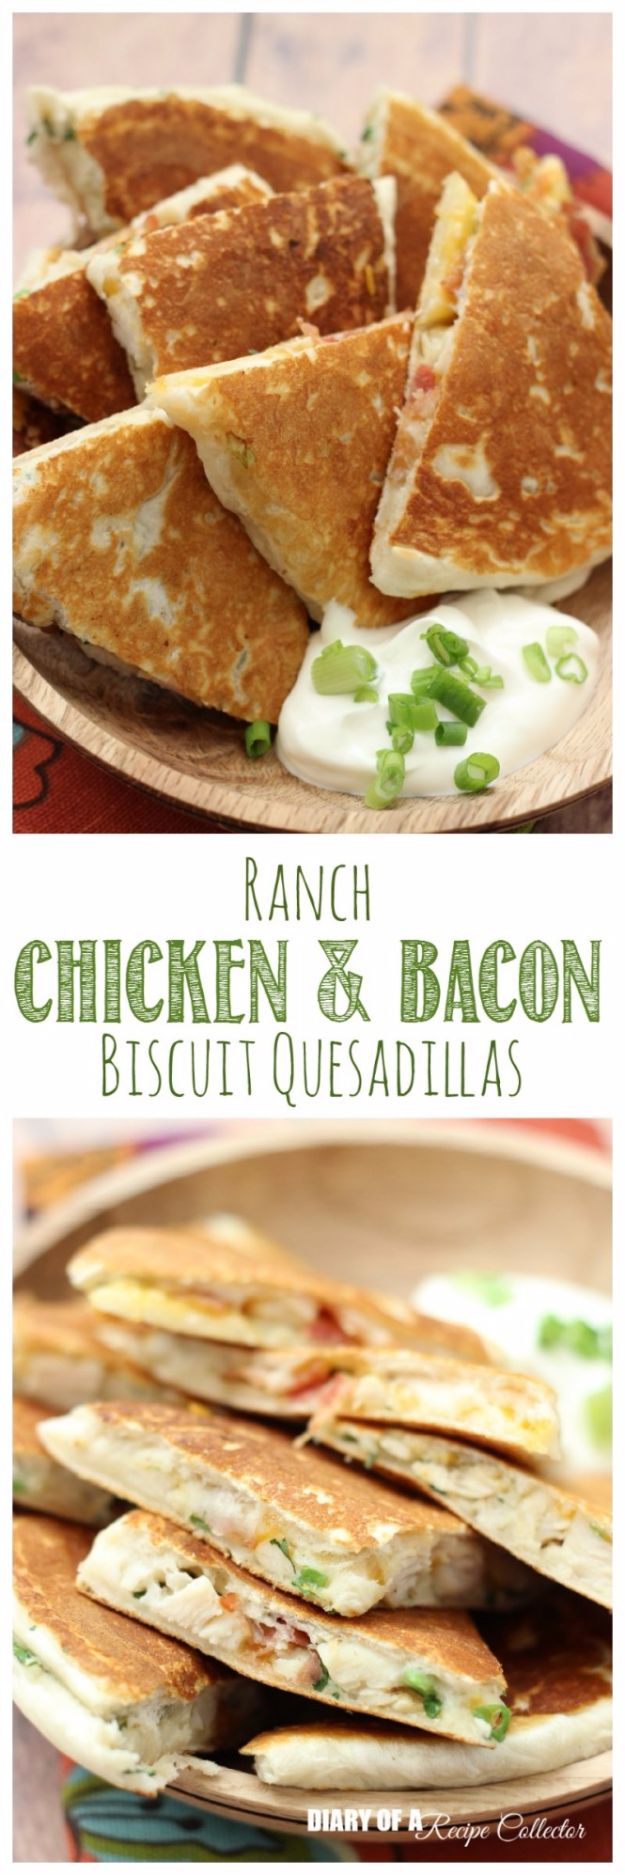 Best Canned Biscuit Recipes - Ranch Chicken & Bacon Biscuit Quesadillas - Cool DIY Recipe Ideas You Can Make With A Can of Biscuits - Easy Breakfast, Lunch, Dinner and Desserts You Can Make From Pillsbury Pull Apart Biscuits - Garlic, Sour Cream, Ground Beef, Sweet and Savory, Ideas with Cheese - Delicious Meals on A Budget With Step by Step Tutorials http://diyjoy.com/best-recipes-canned-biscuits